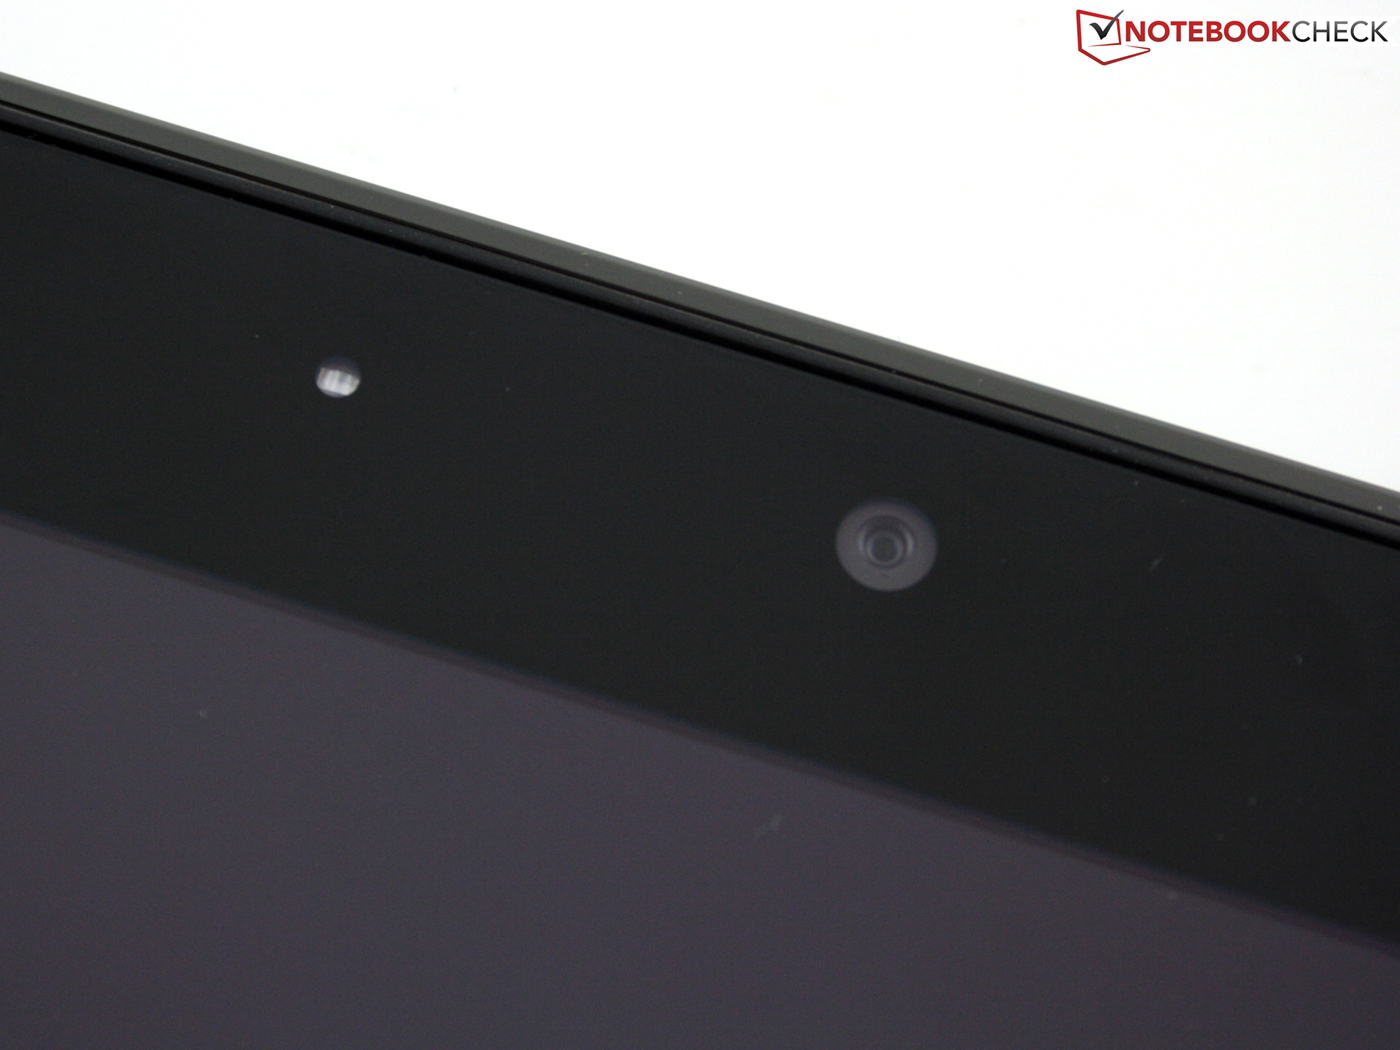 how to connect blackberry playbook to wifi